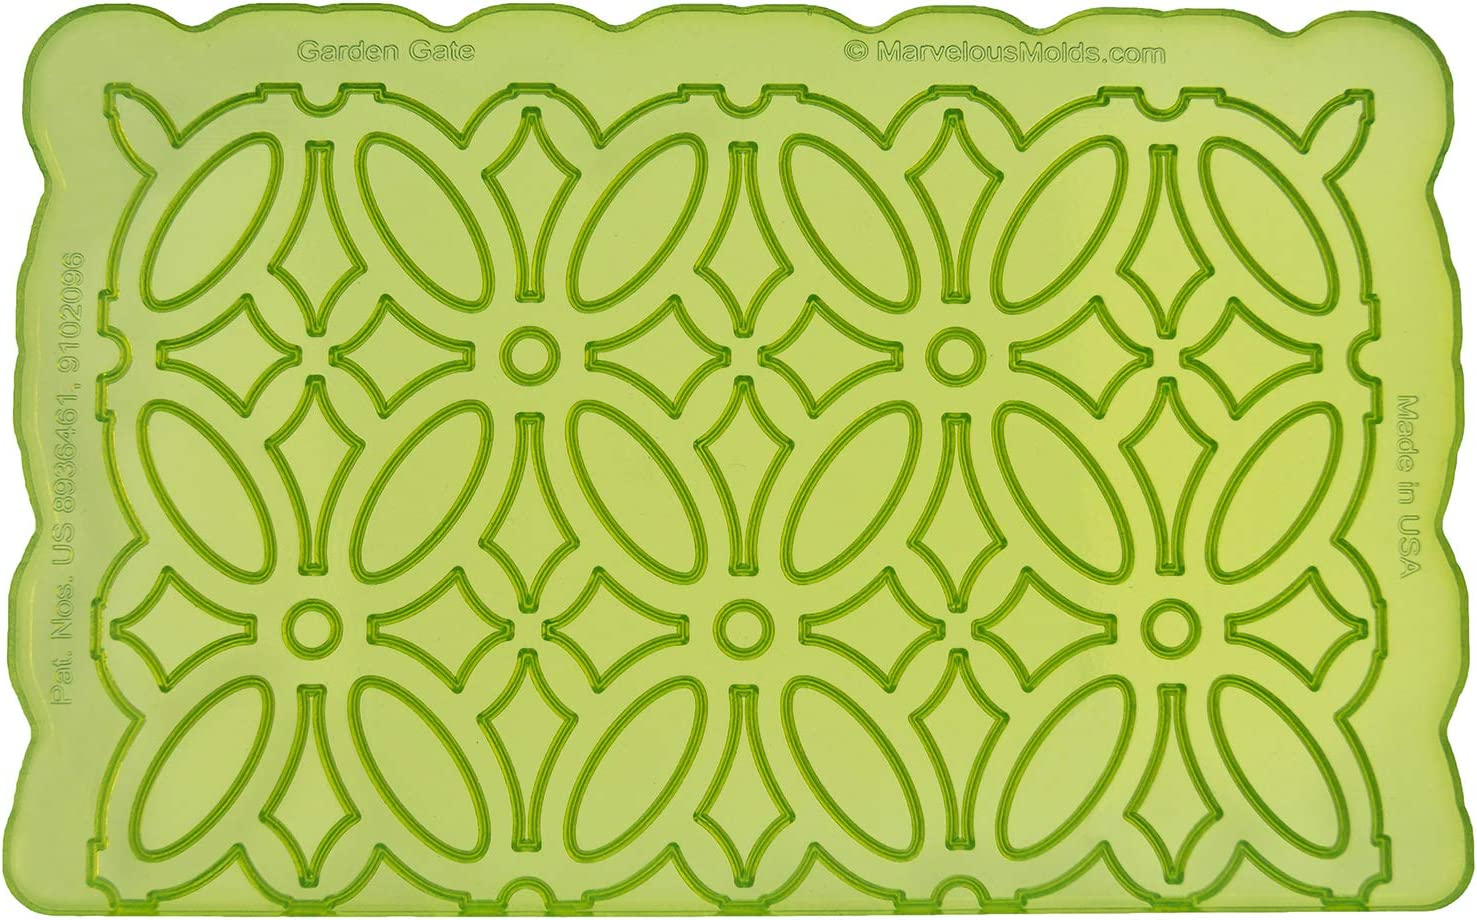 Marvelous Molds MM-2002 Garden Gate Silicone Onlay